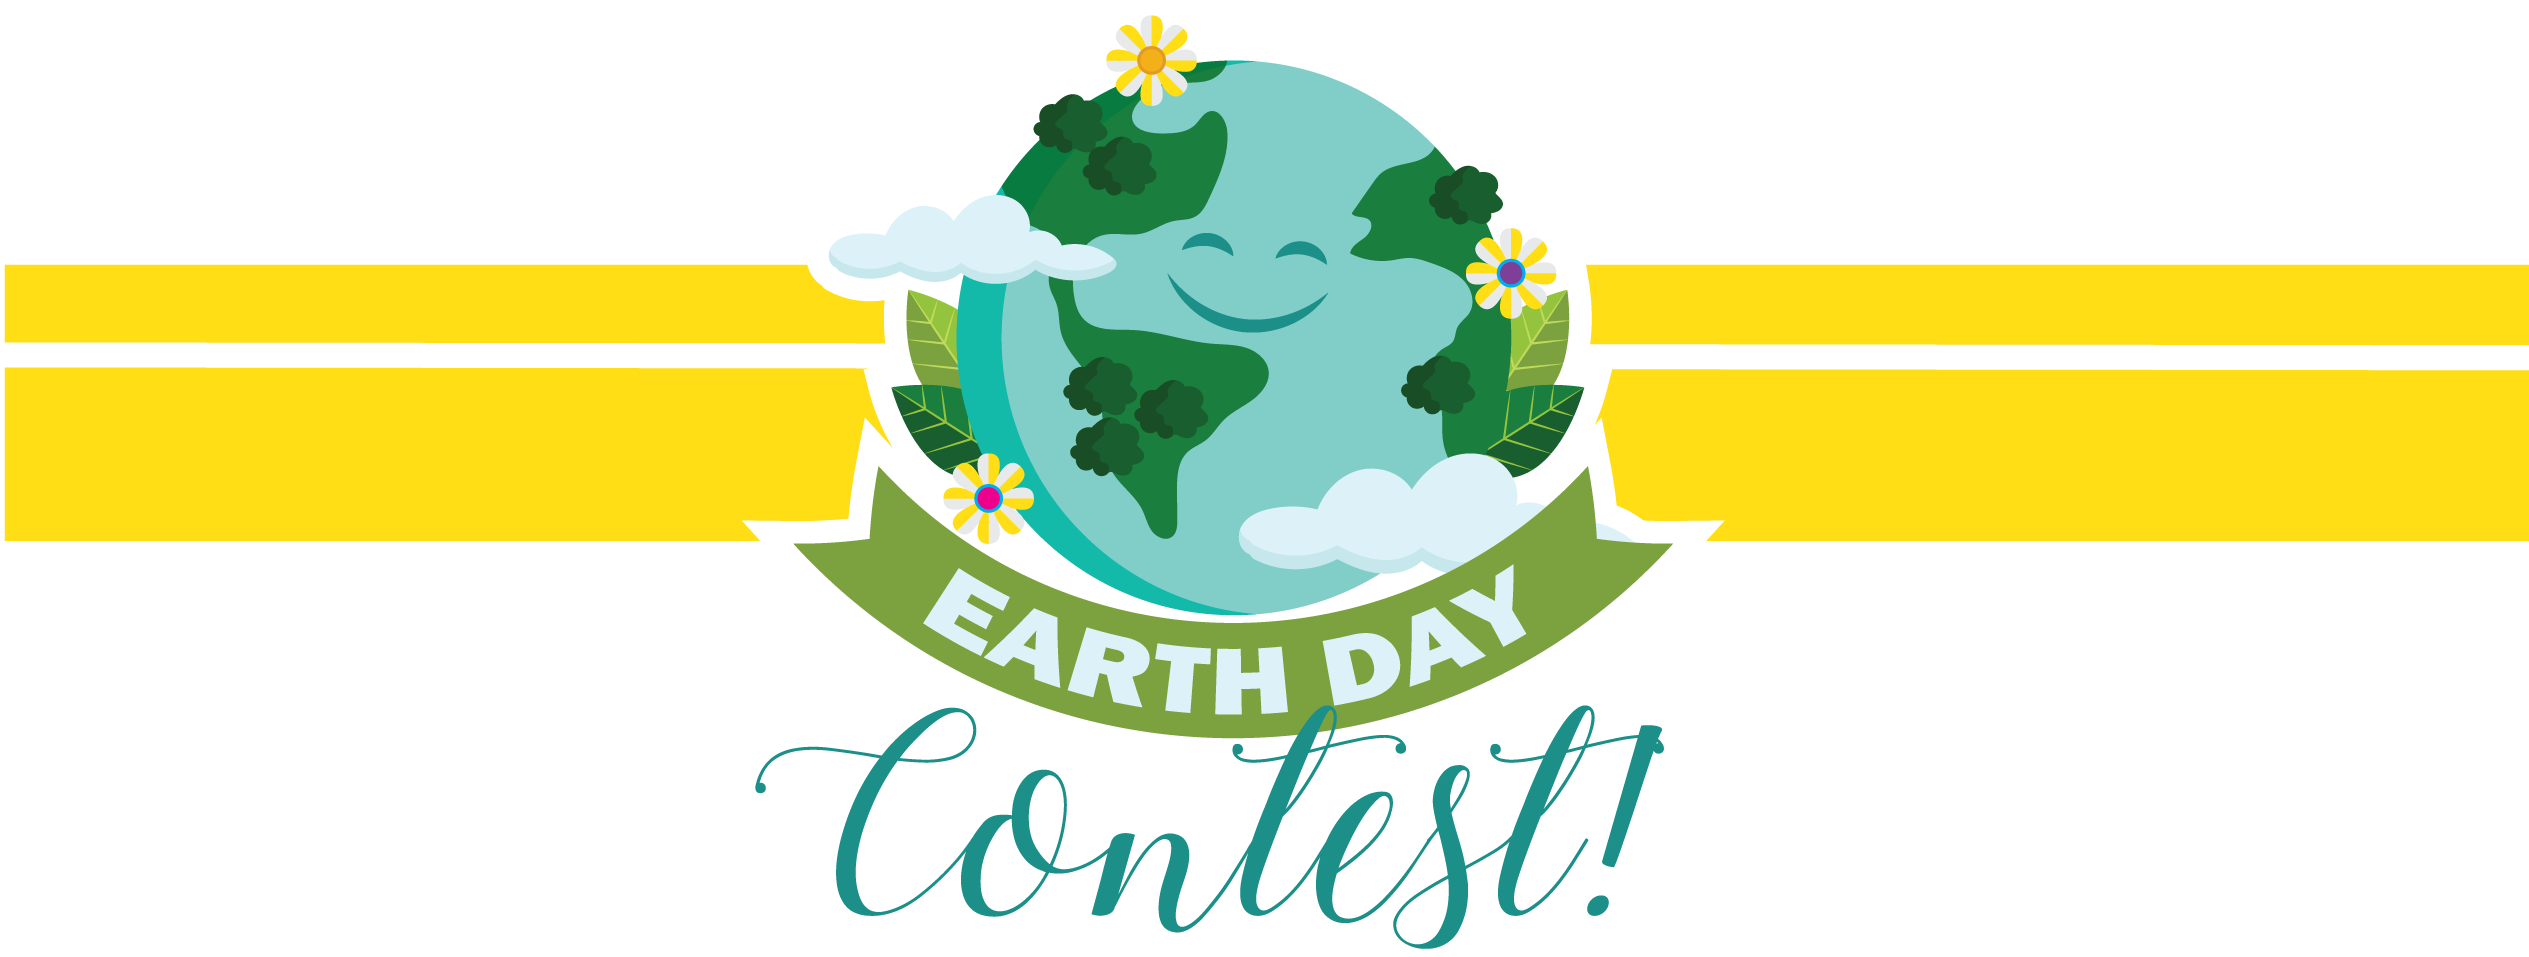 Earth day contest so you can enjoy nature and play with our food! Yann Haute Patisserie, French bakery Calgary